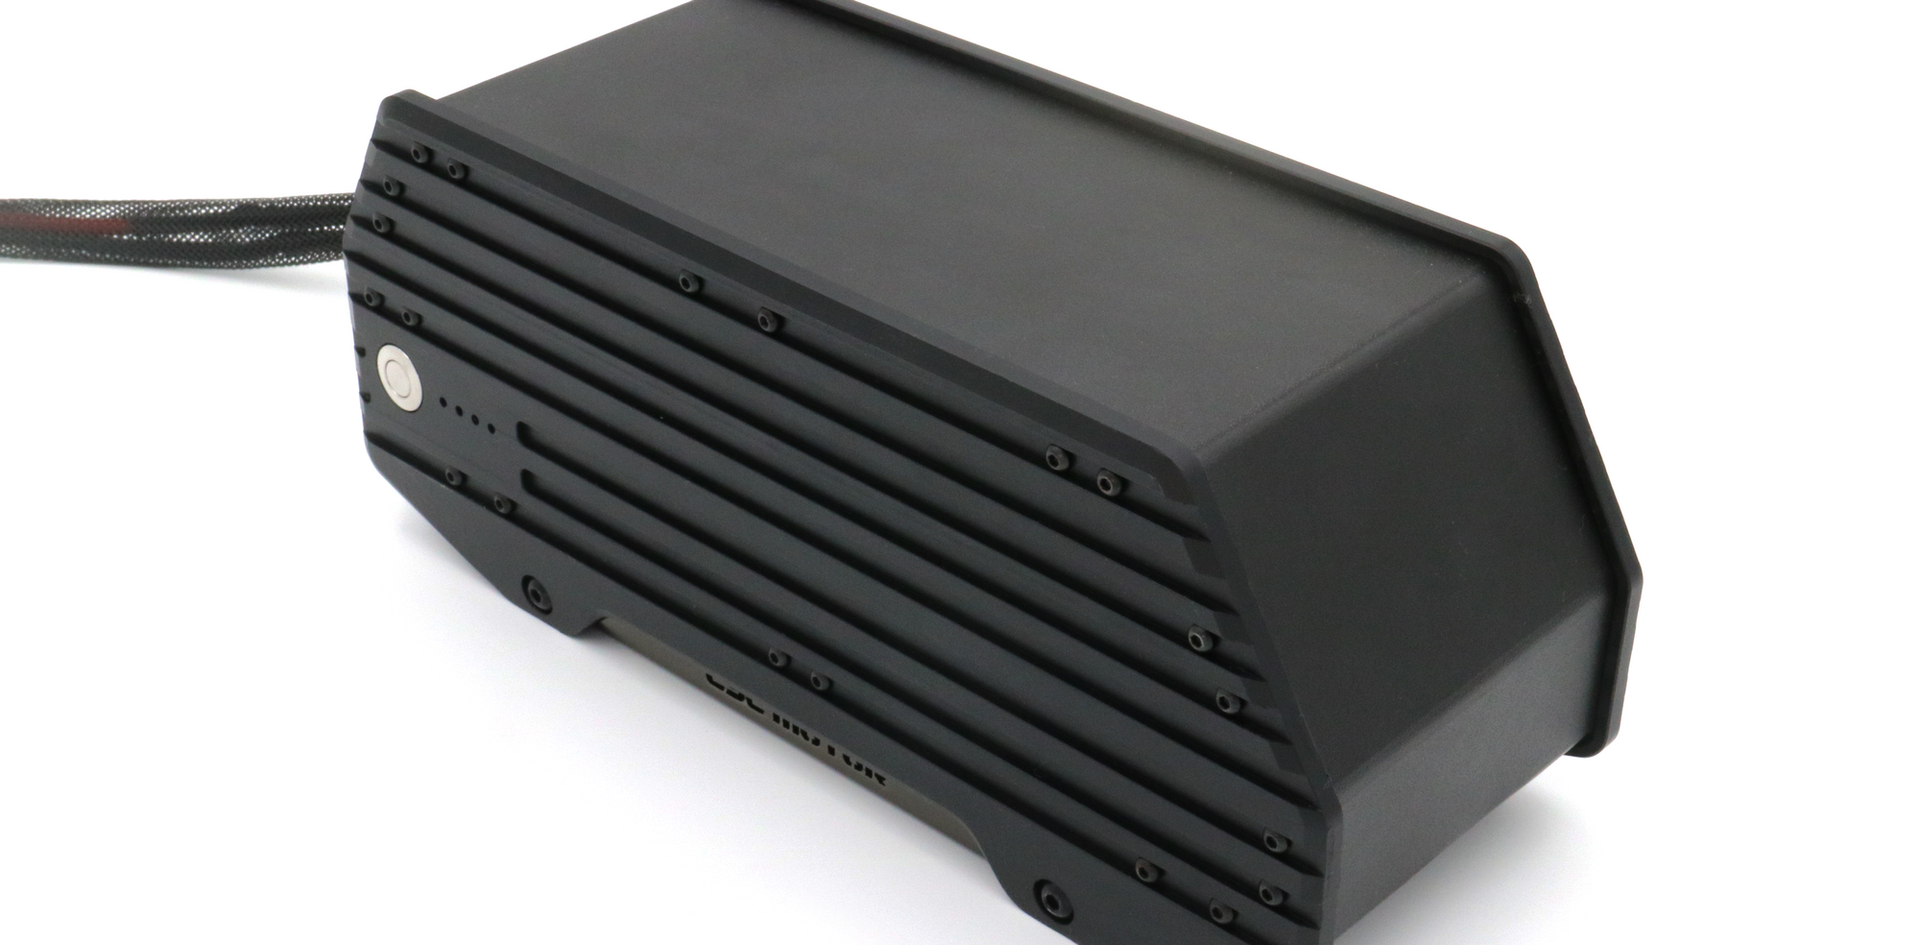 X52 42 top front right view 2.png